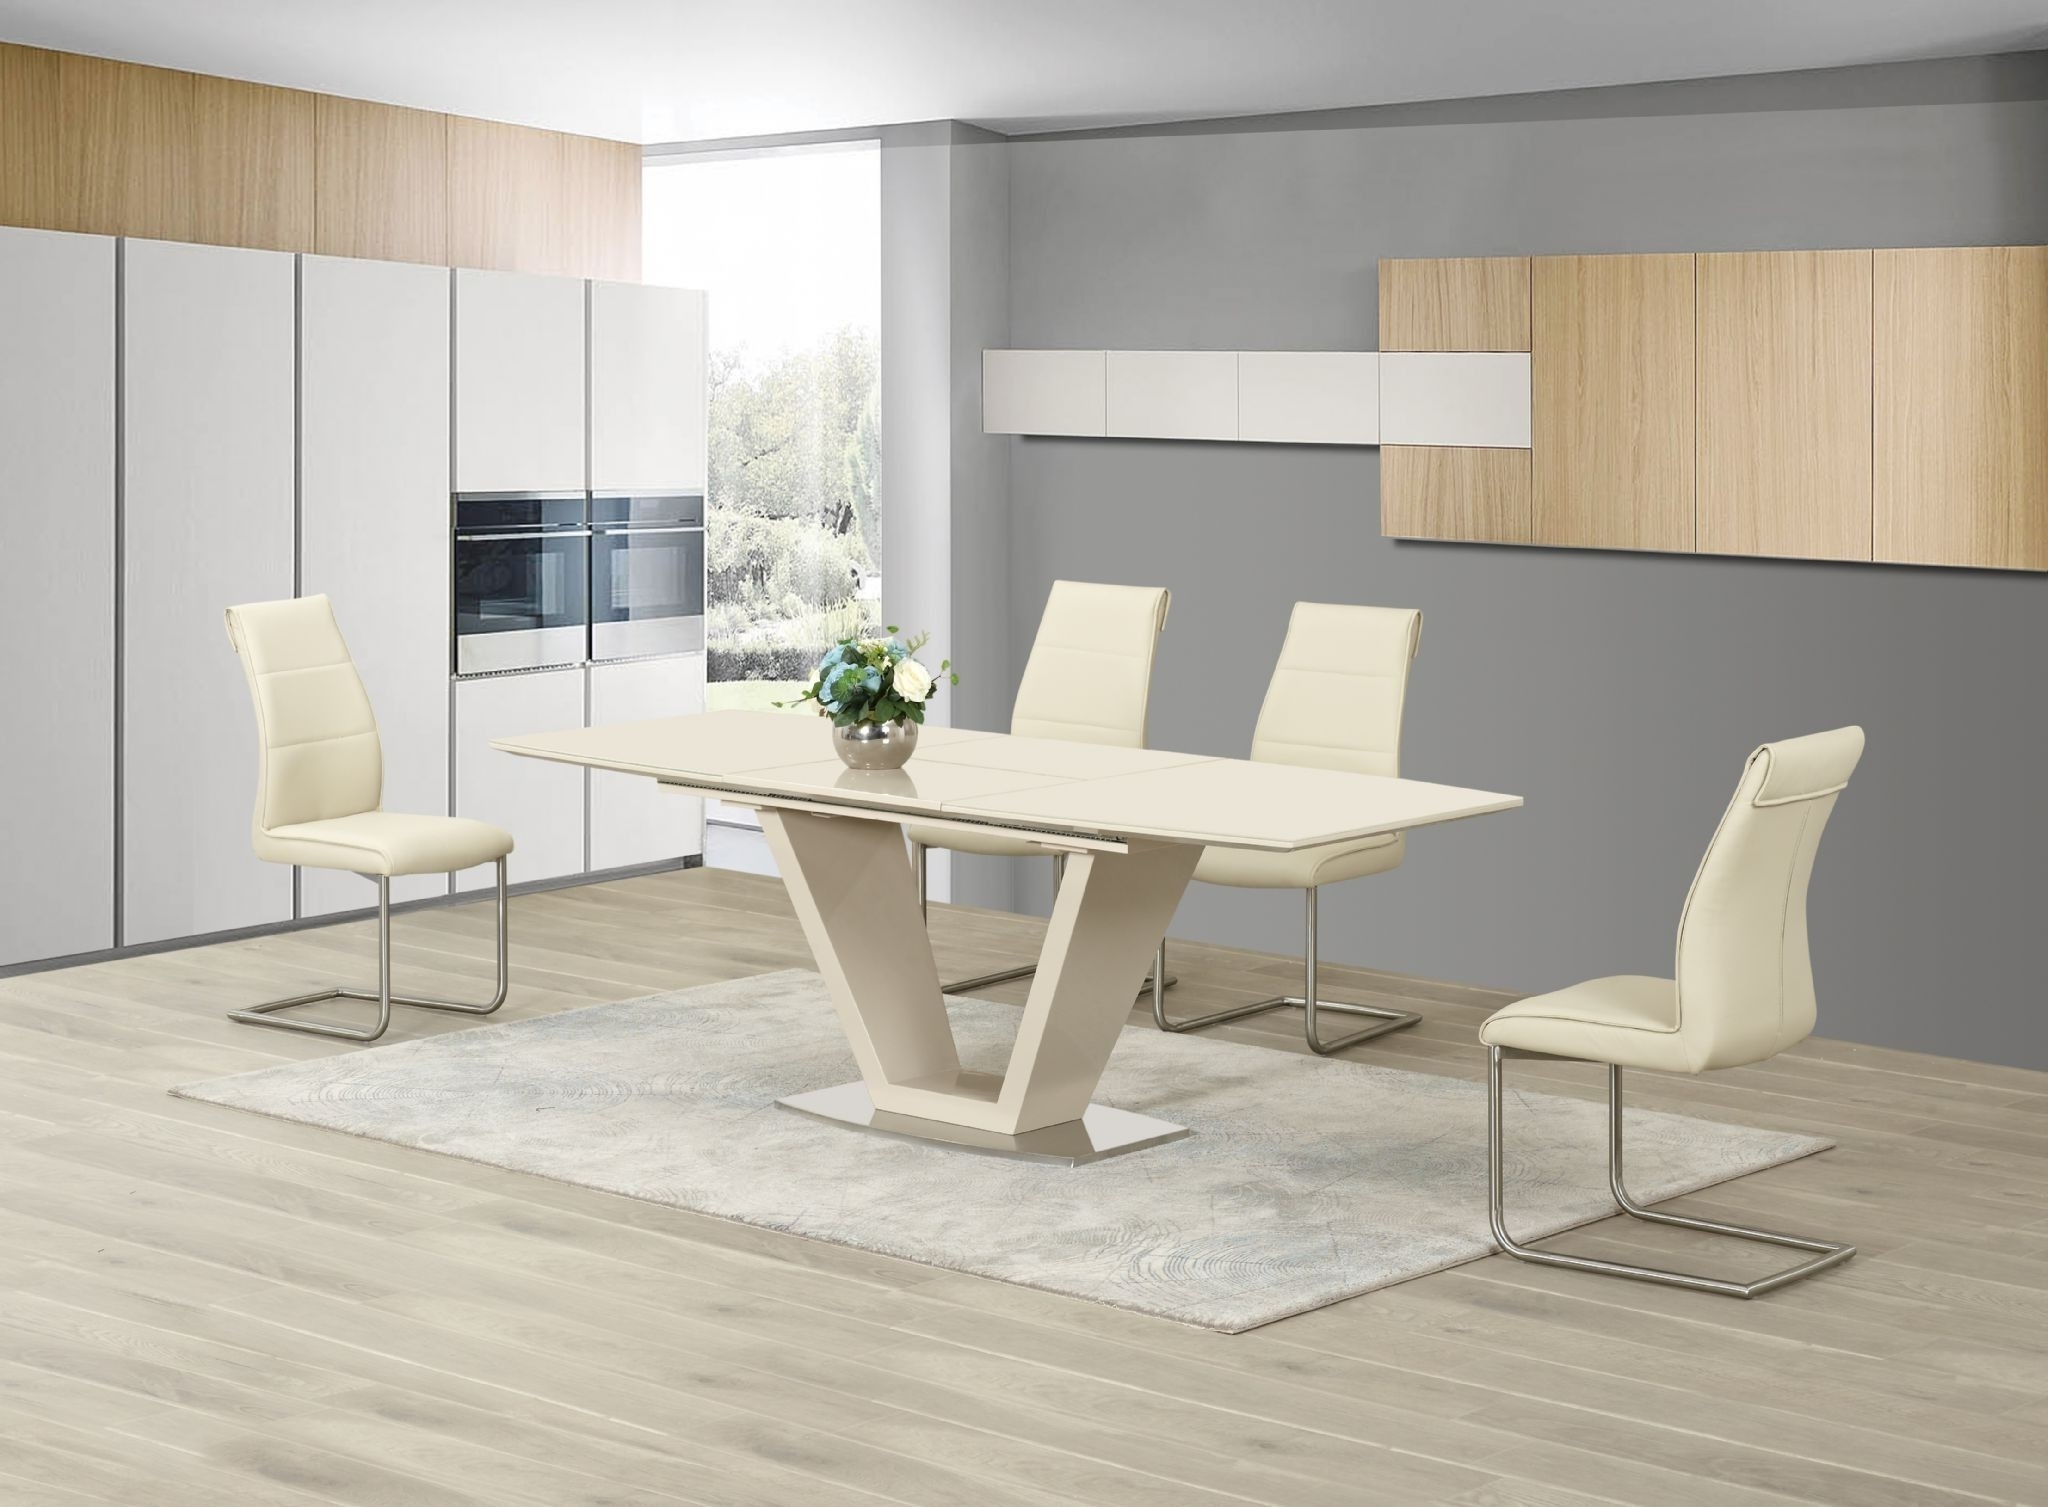 Floris Cream Gloss Extending Dining Table 160 220Cm Regarding Current Cheap Extendable Dining Tables (View 16 of 25)